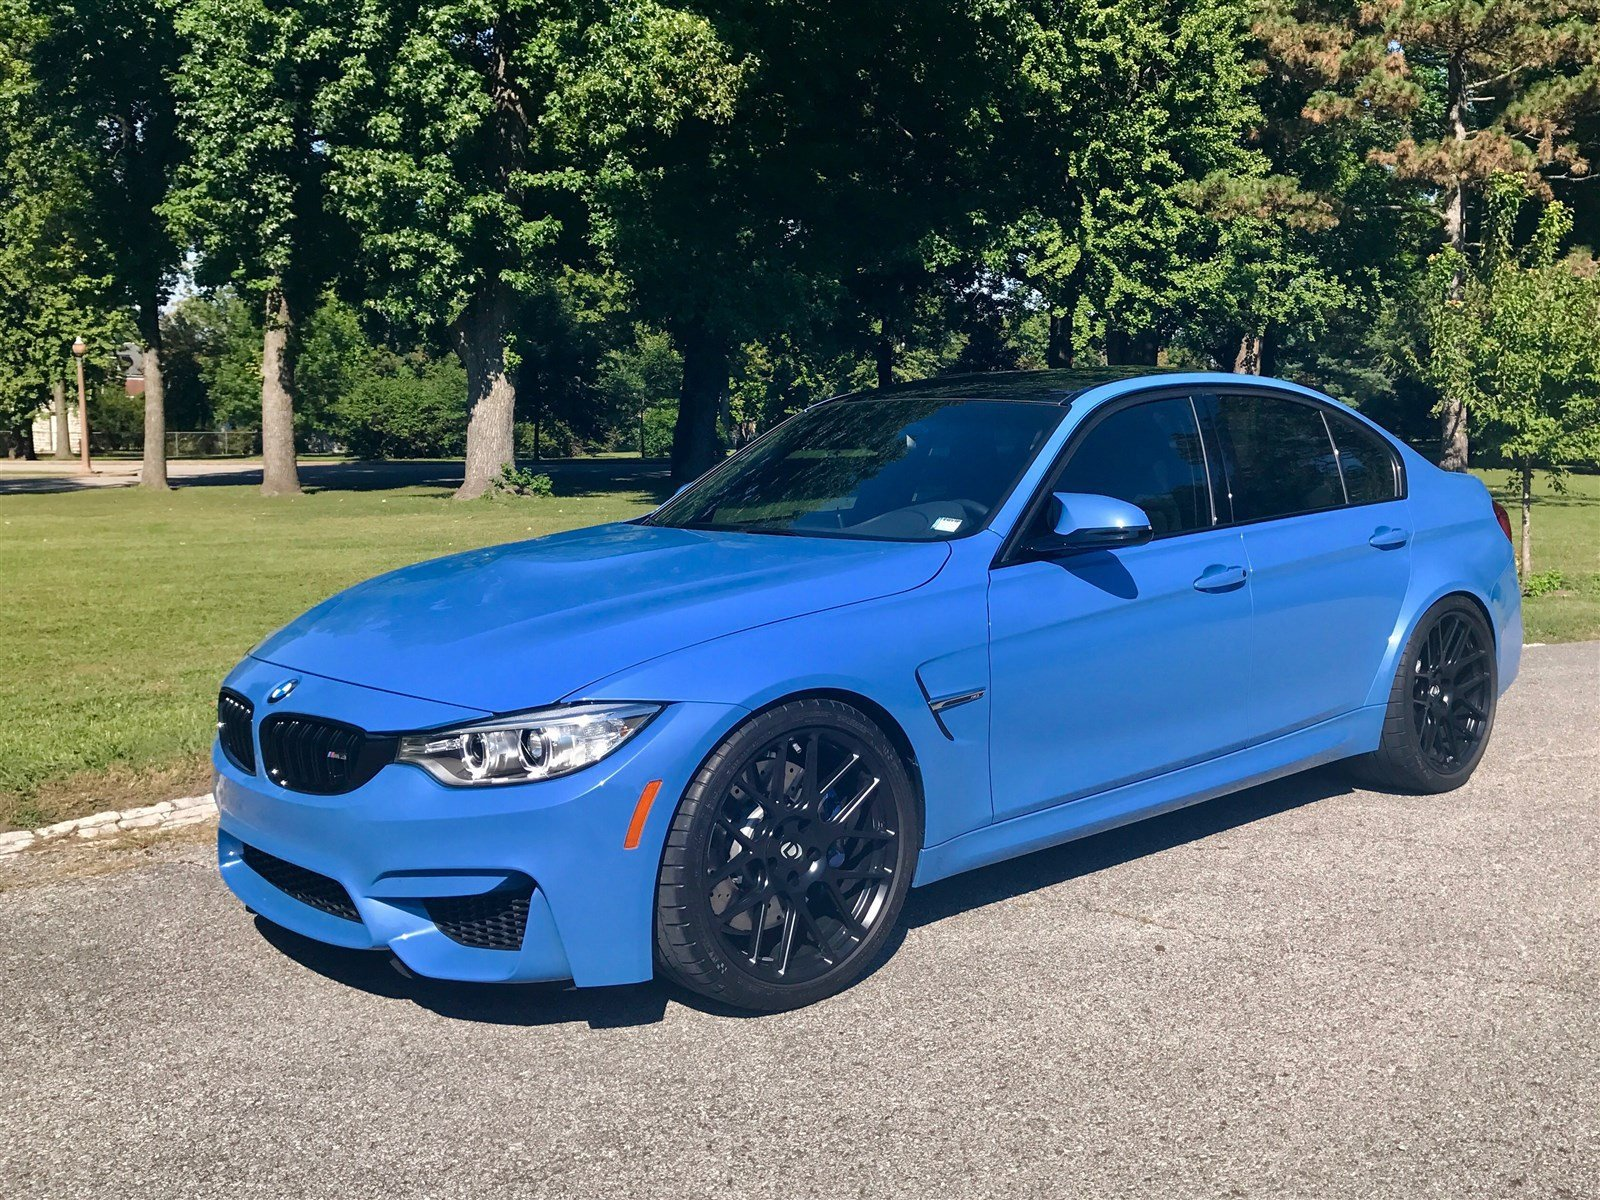 Bmw M3 For Sale In Saint Louis Mo 63101 Autotrader